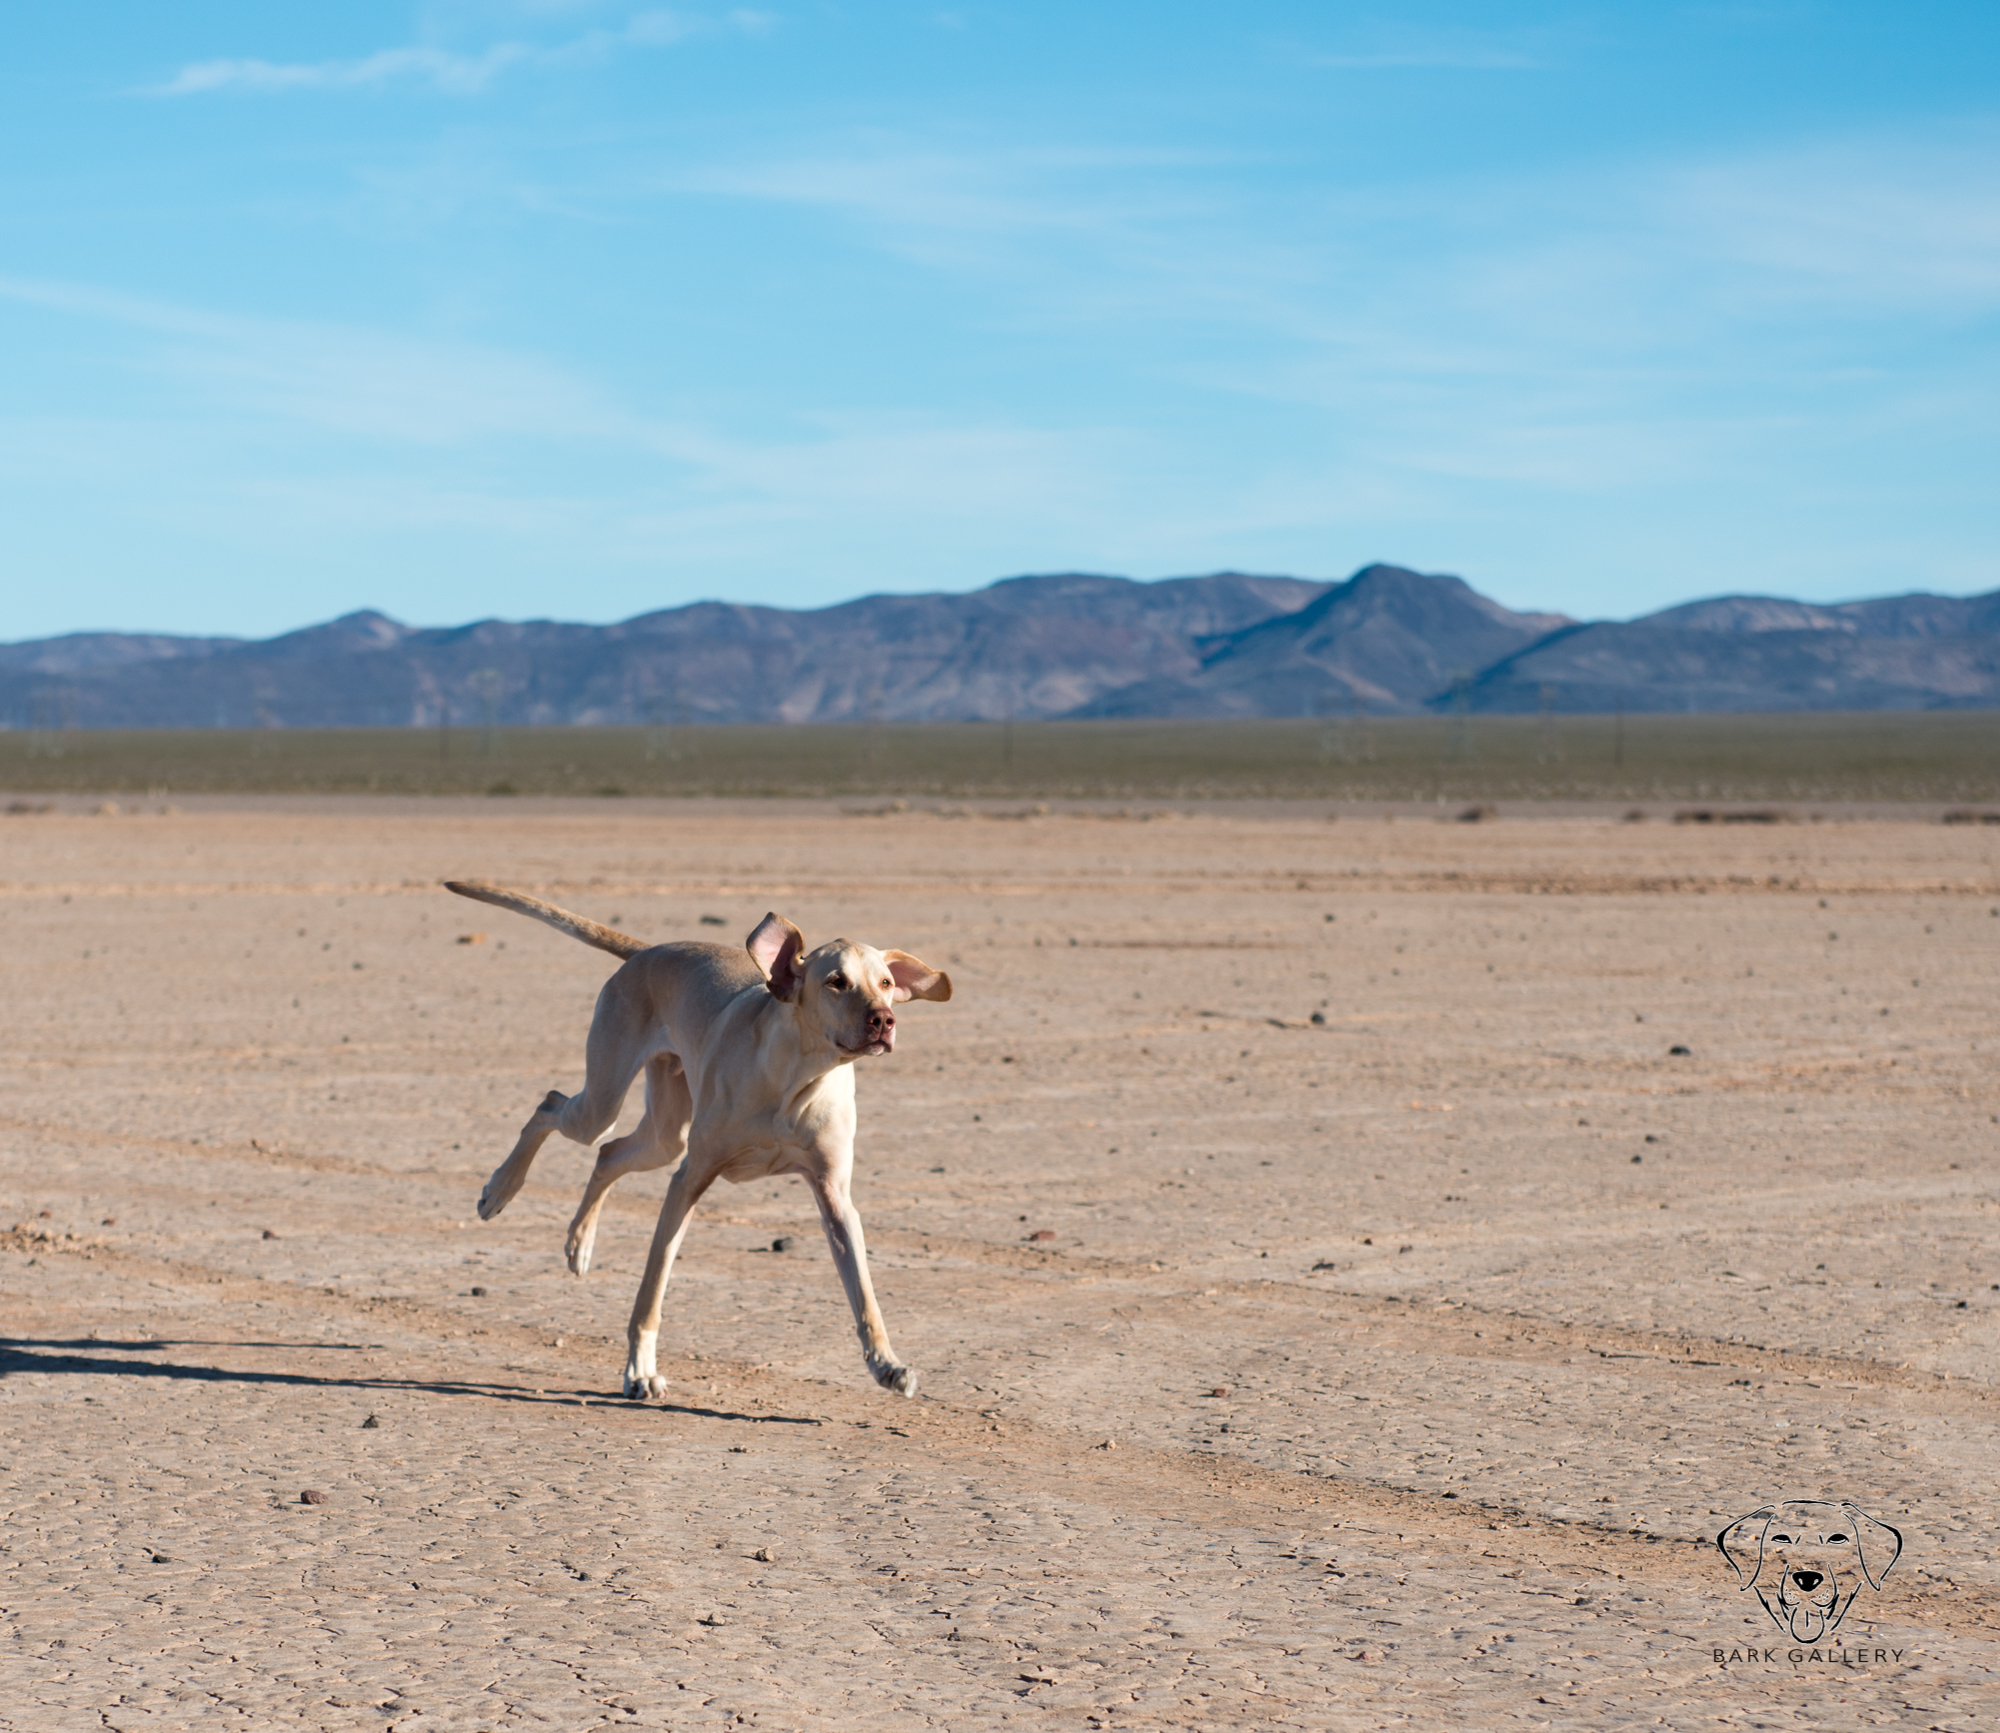 dog-las-vegas-dry-lake-bed